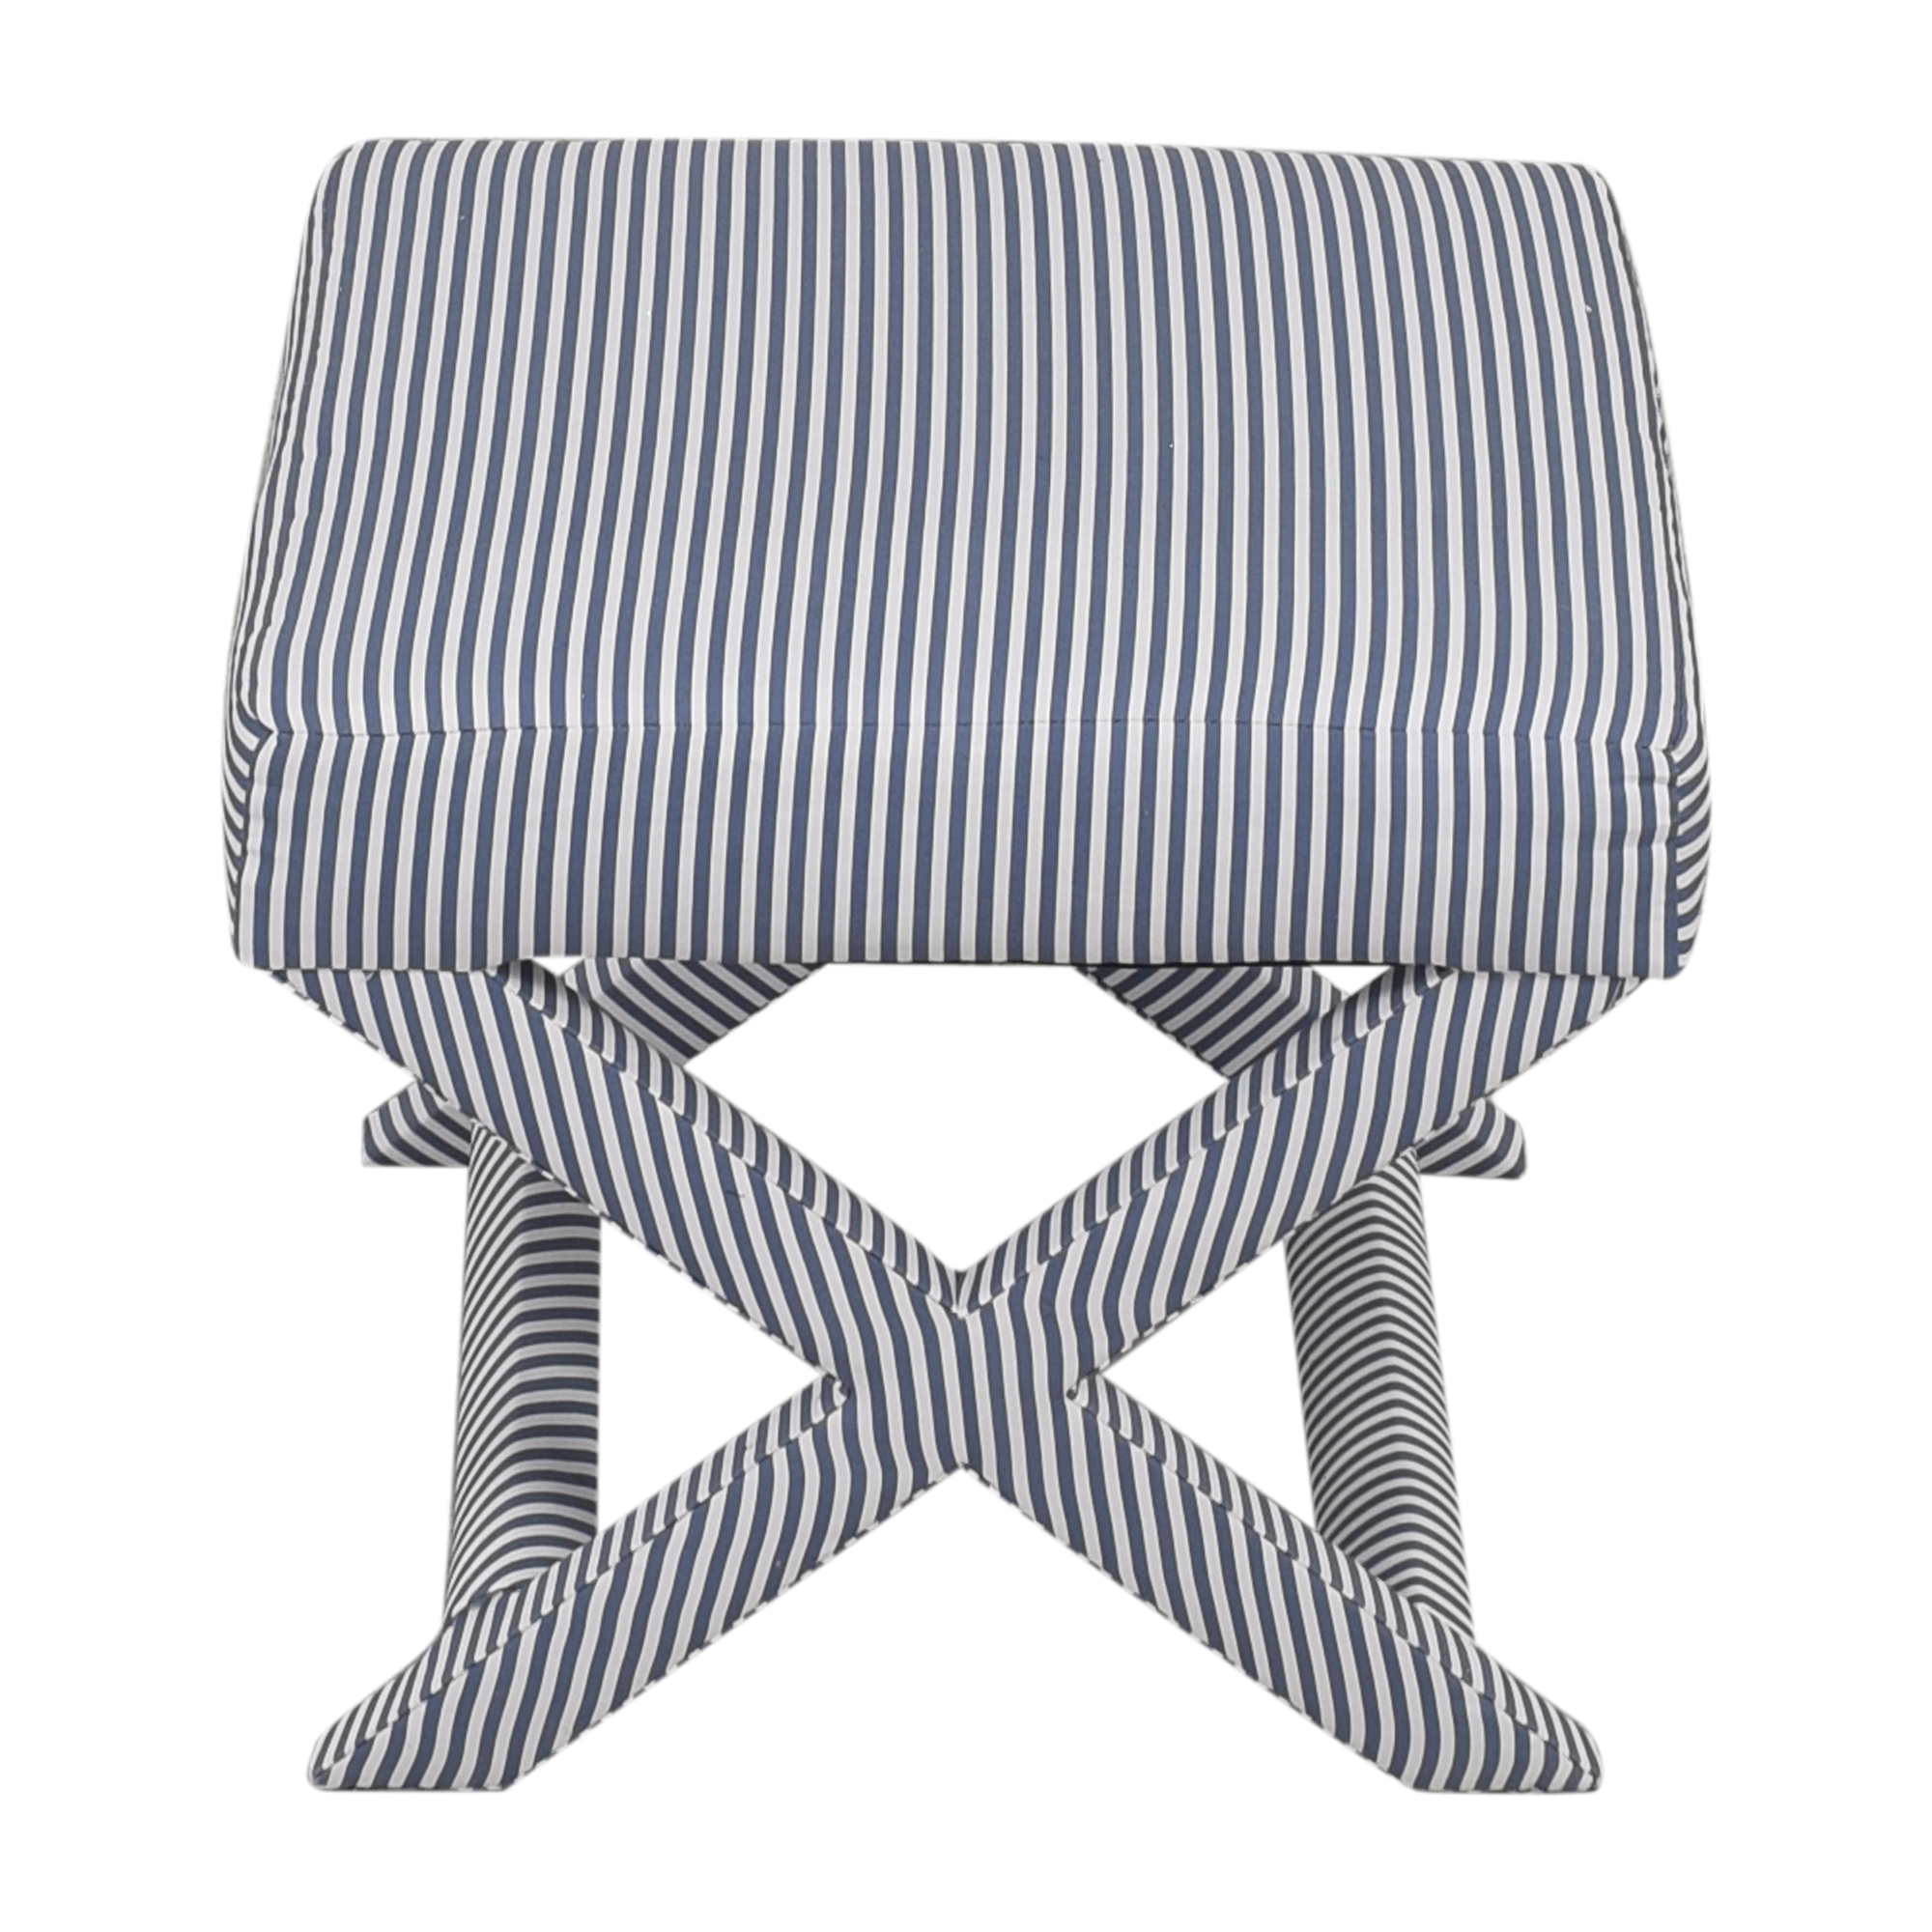 The inside Ticking Stripe X Bench / Chairs